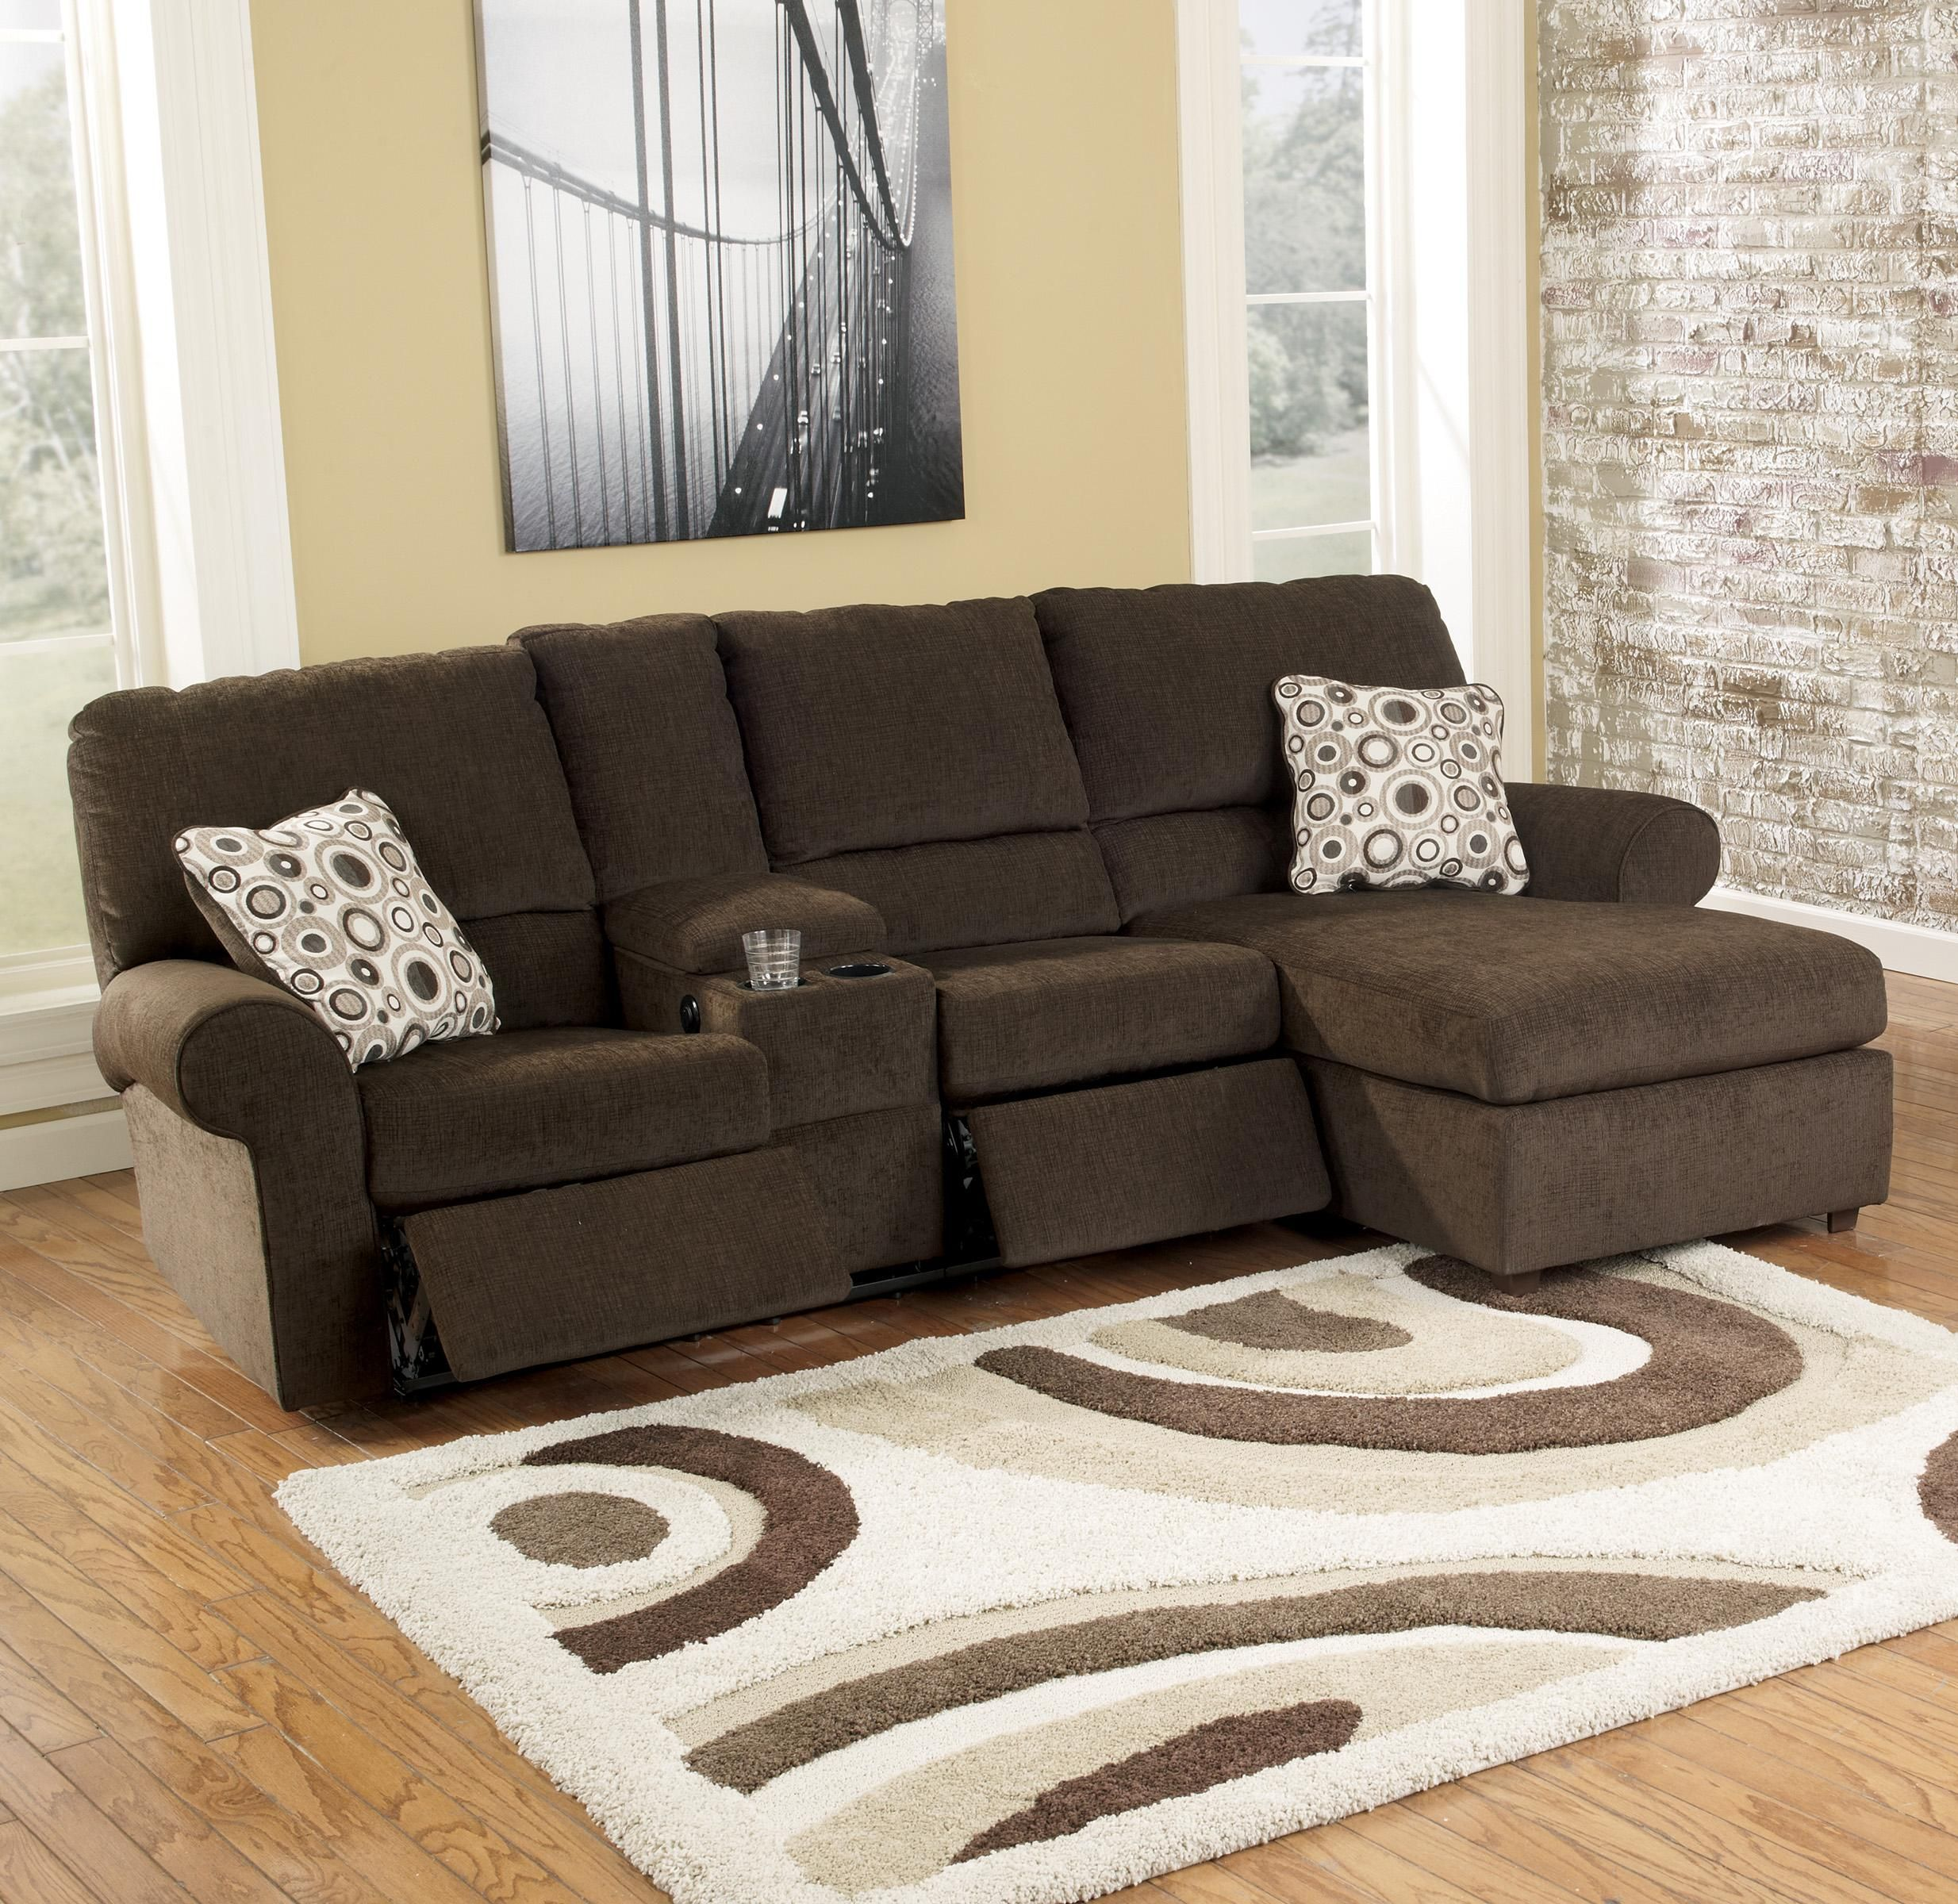 Signature Design by Ashley Cybertrack - Chocolate Reclining Sectional with Power Double Reclining Loveseat w/ Console u0026 Press Back Chaise - Michaelu0027s ... & Cybertrack - Chocolate Power Reclining Sectional by Signature ... islam-shia.org